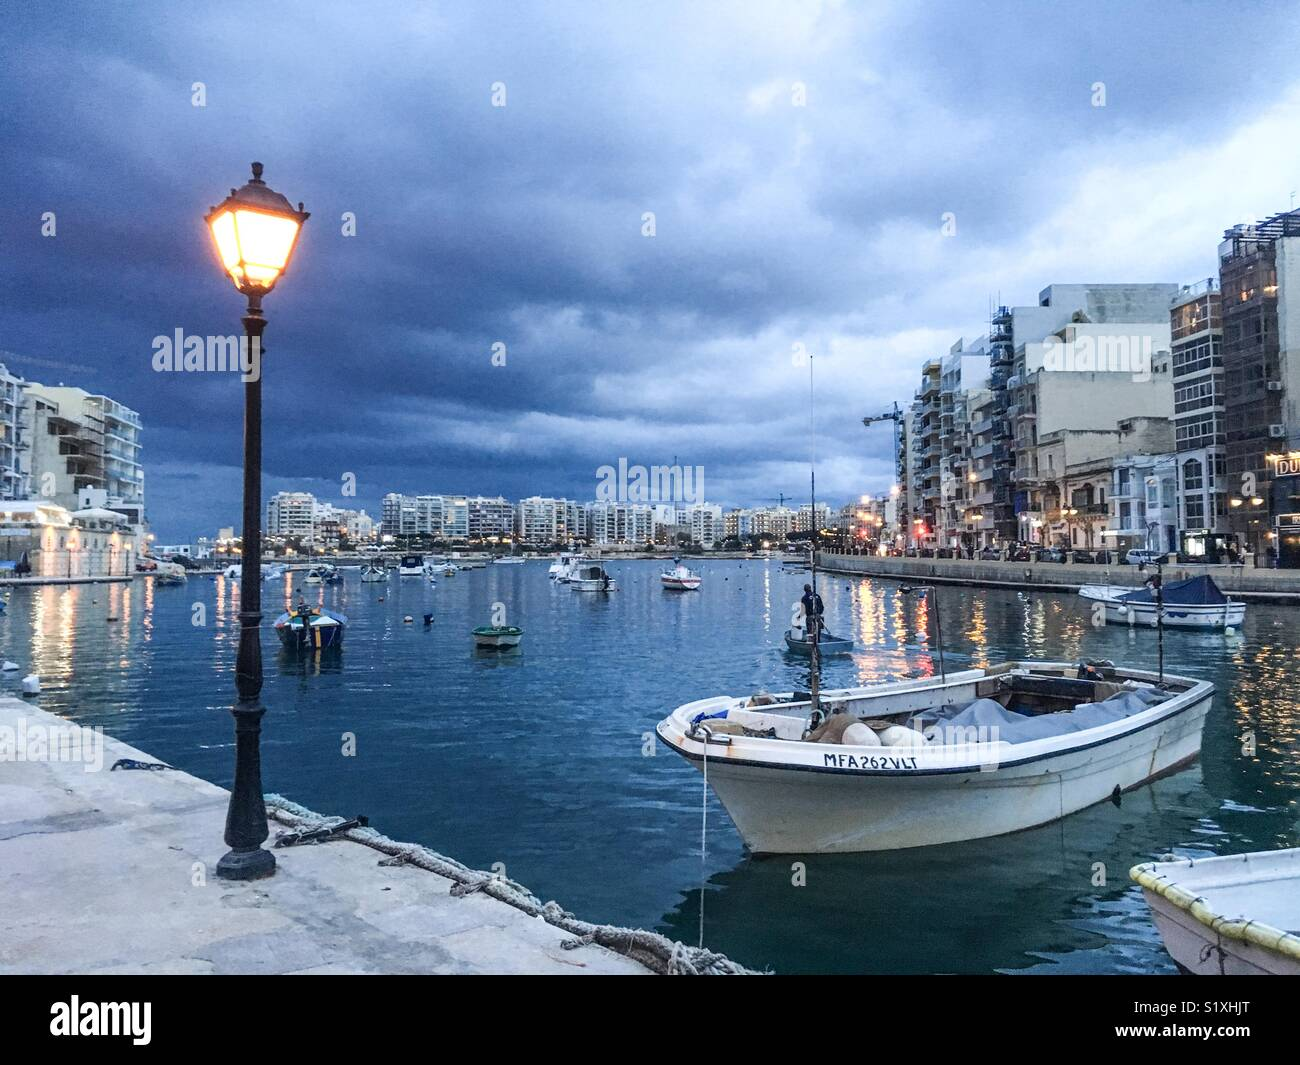 Stormy skies over Spinola Bay, St julians, Malta - Stock Image